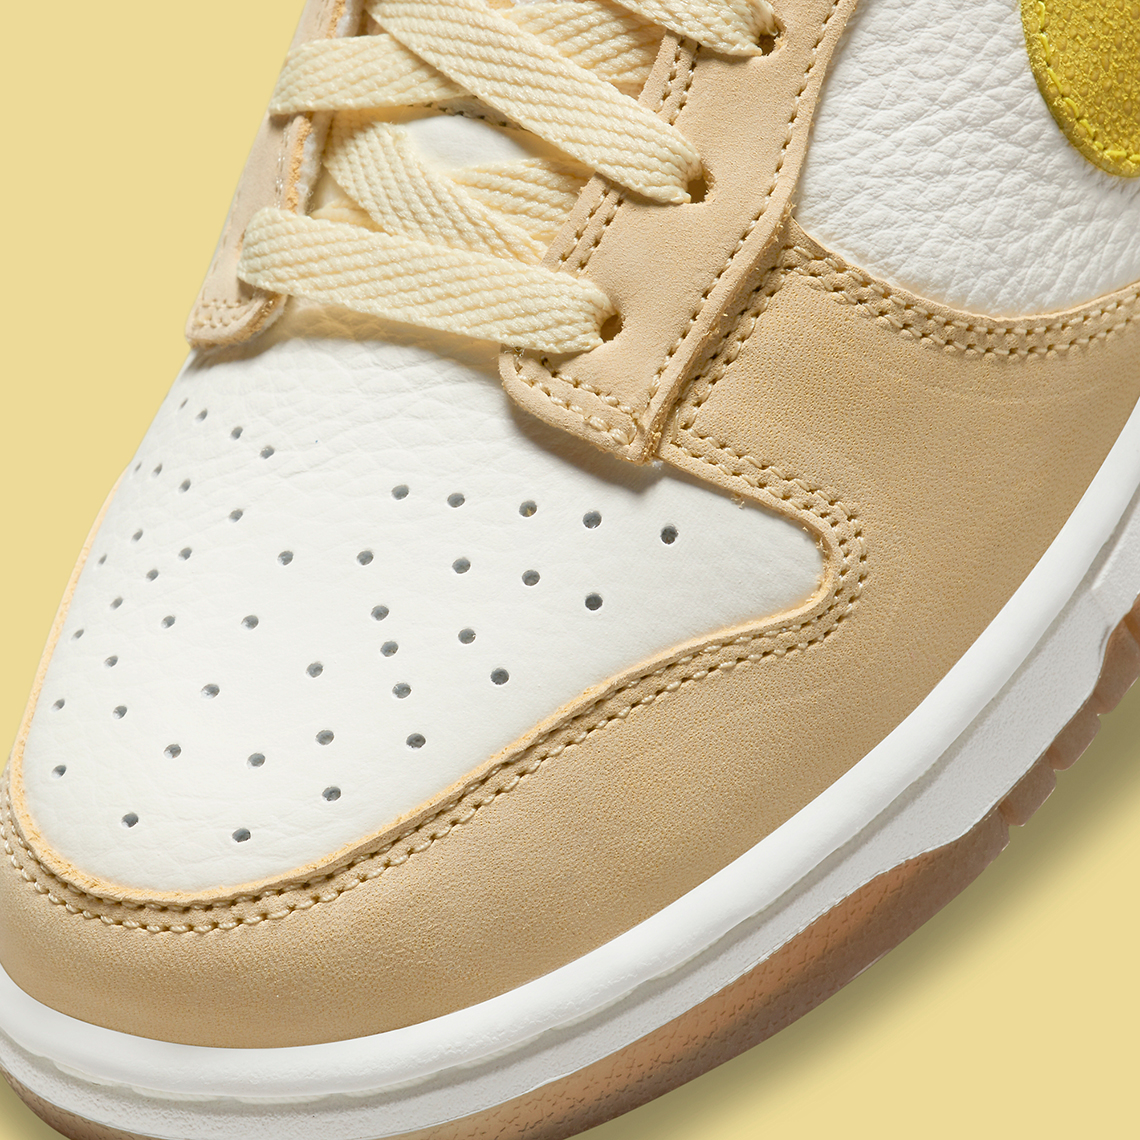 nike-dunk-low-lemon-drop-DJ6902-700-5.jpg?w=1140